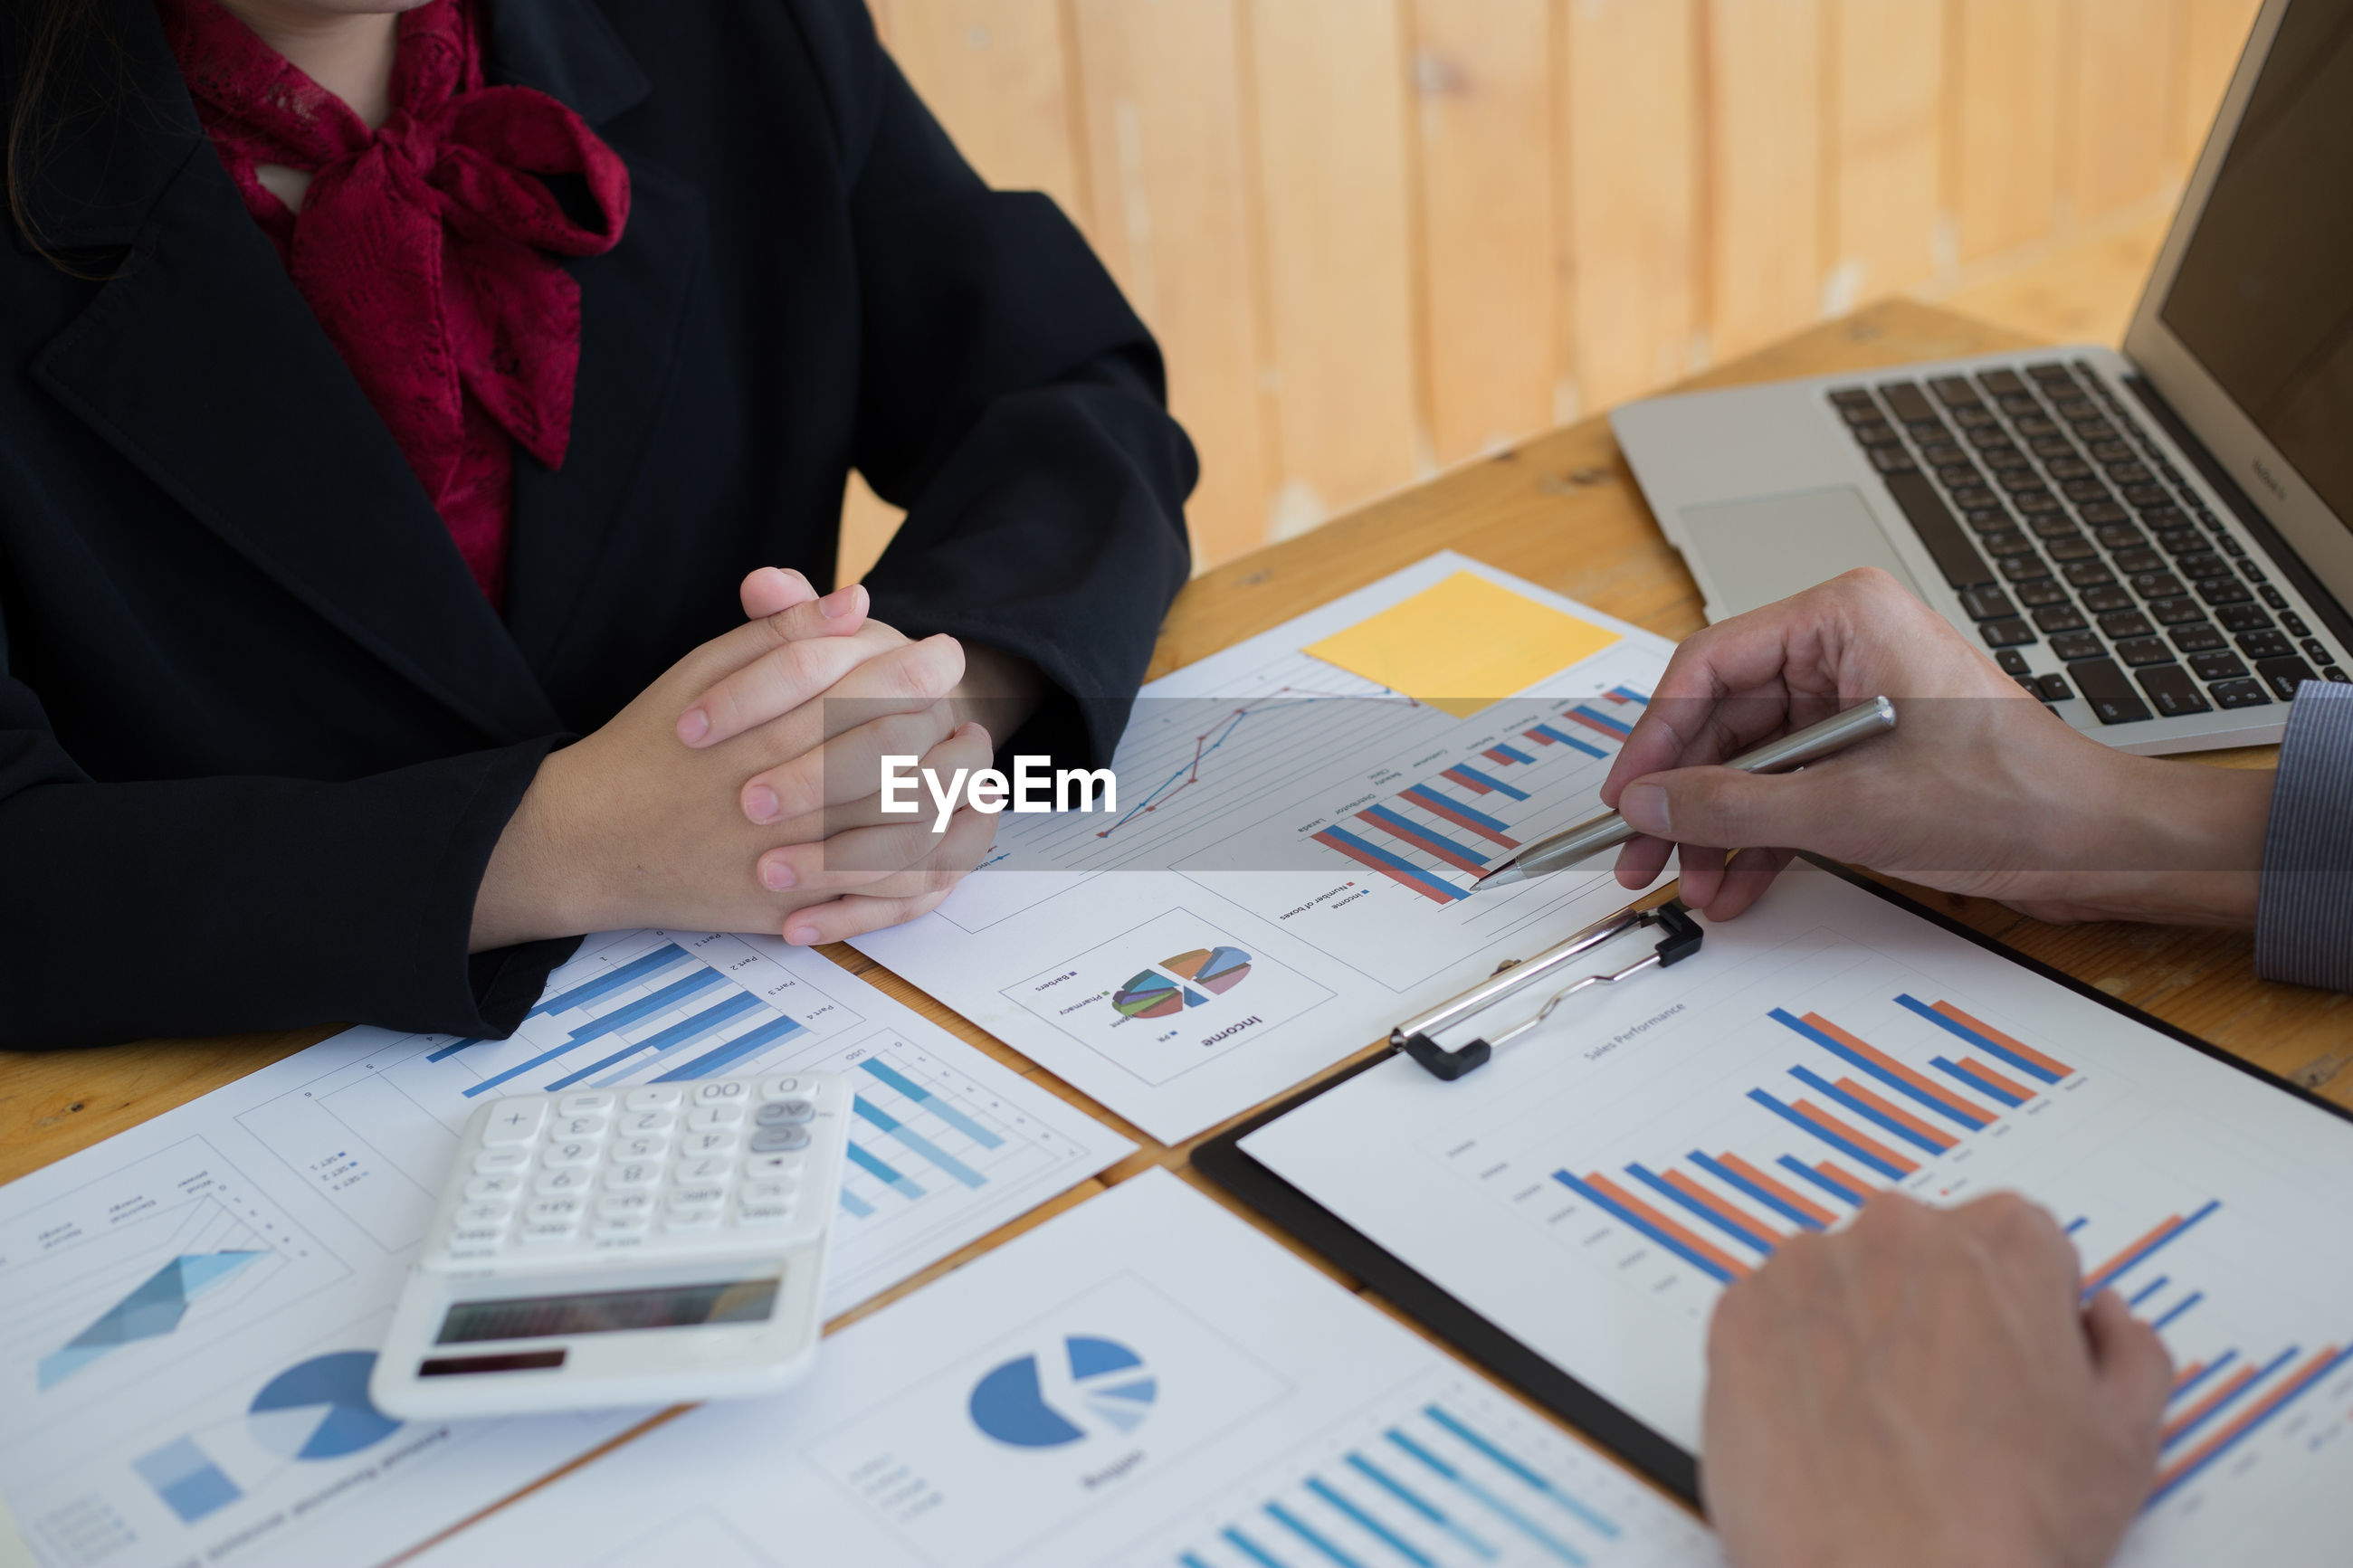 Cropped image of business colleagues analyzing graph on desk in office